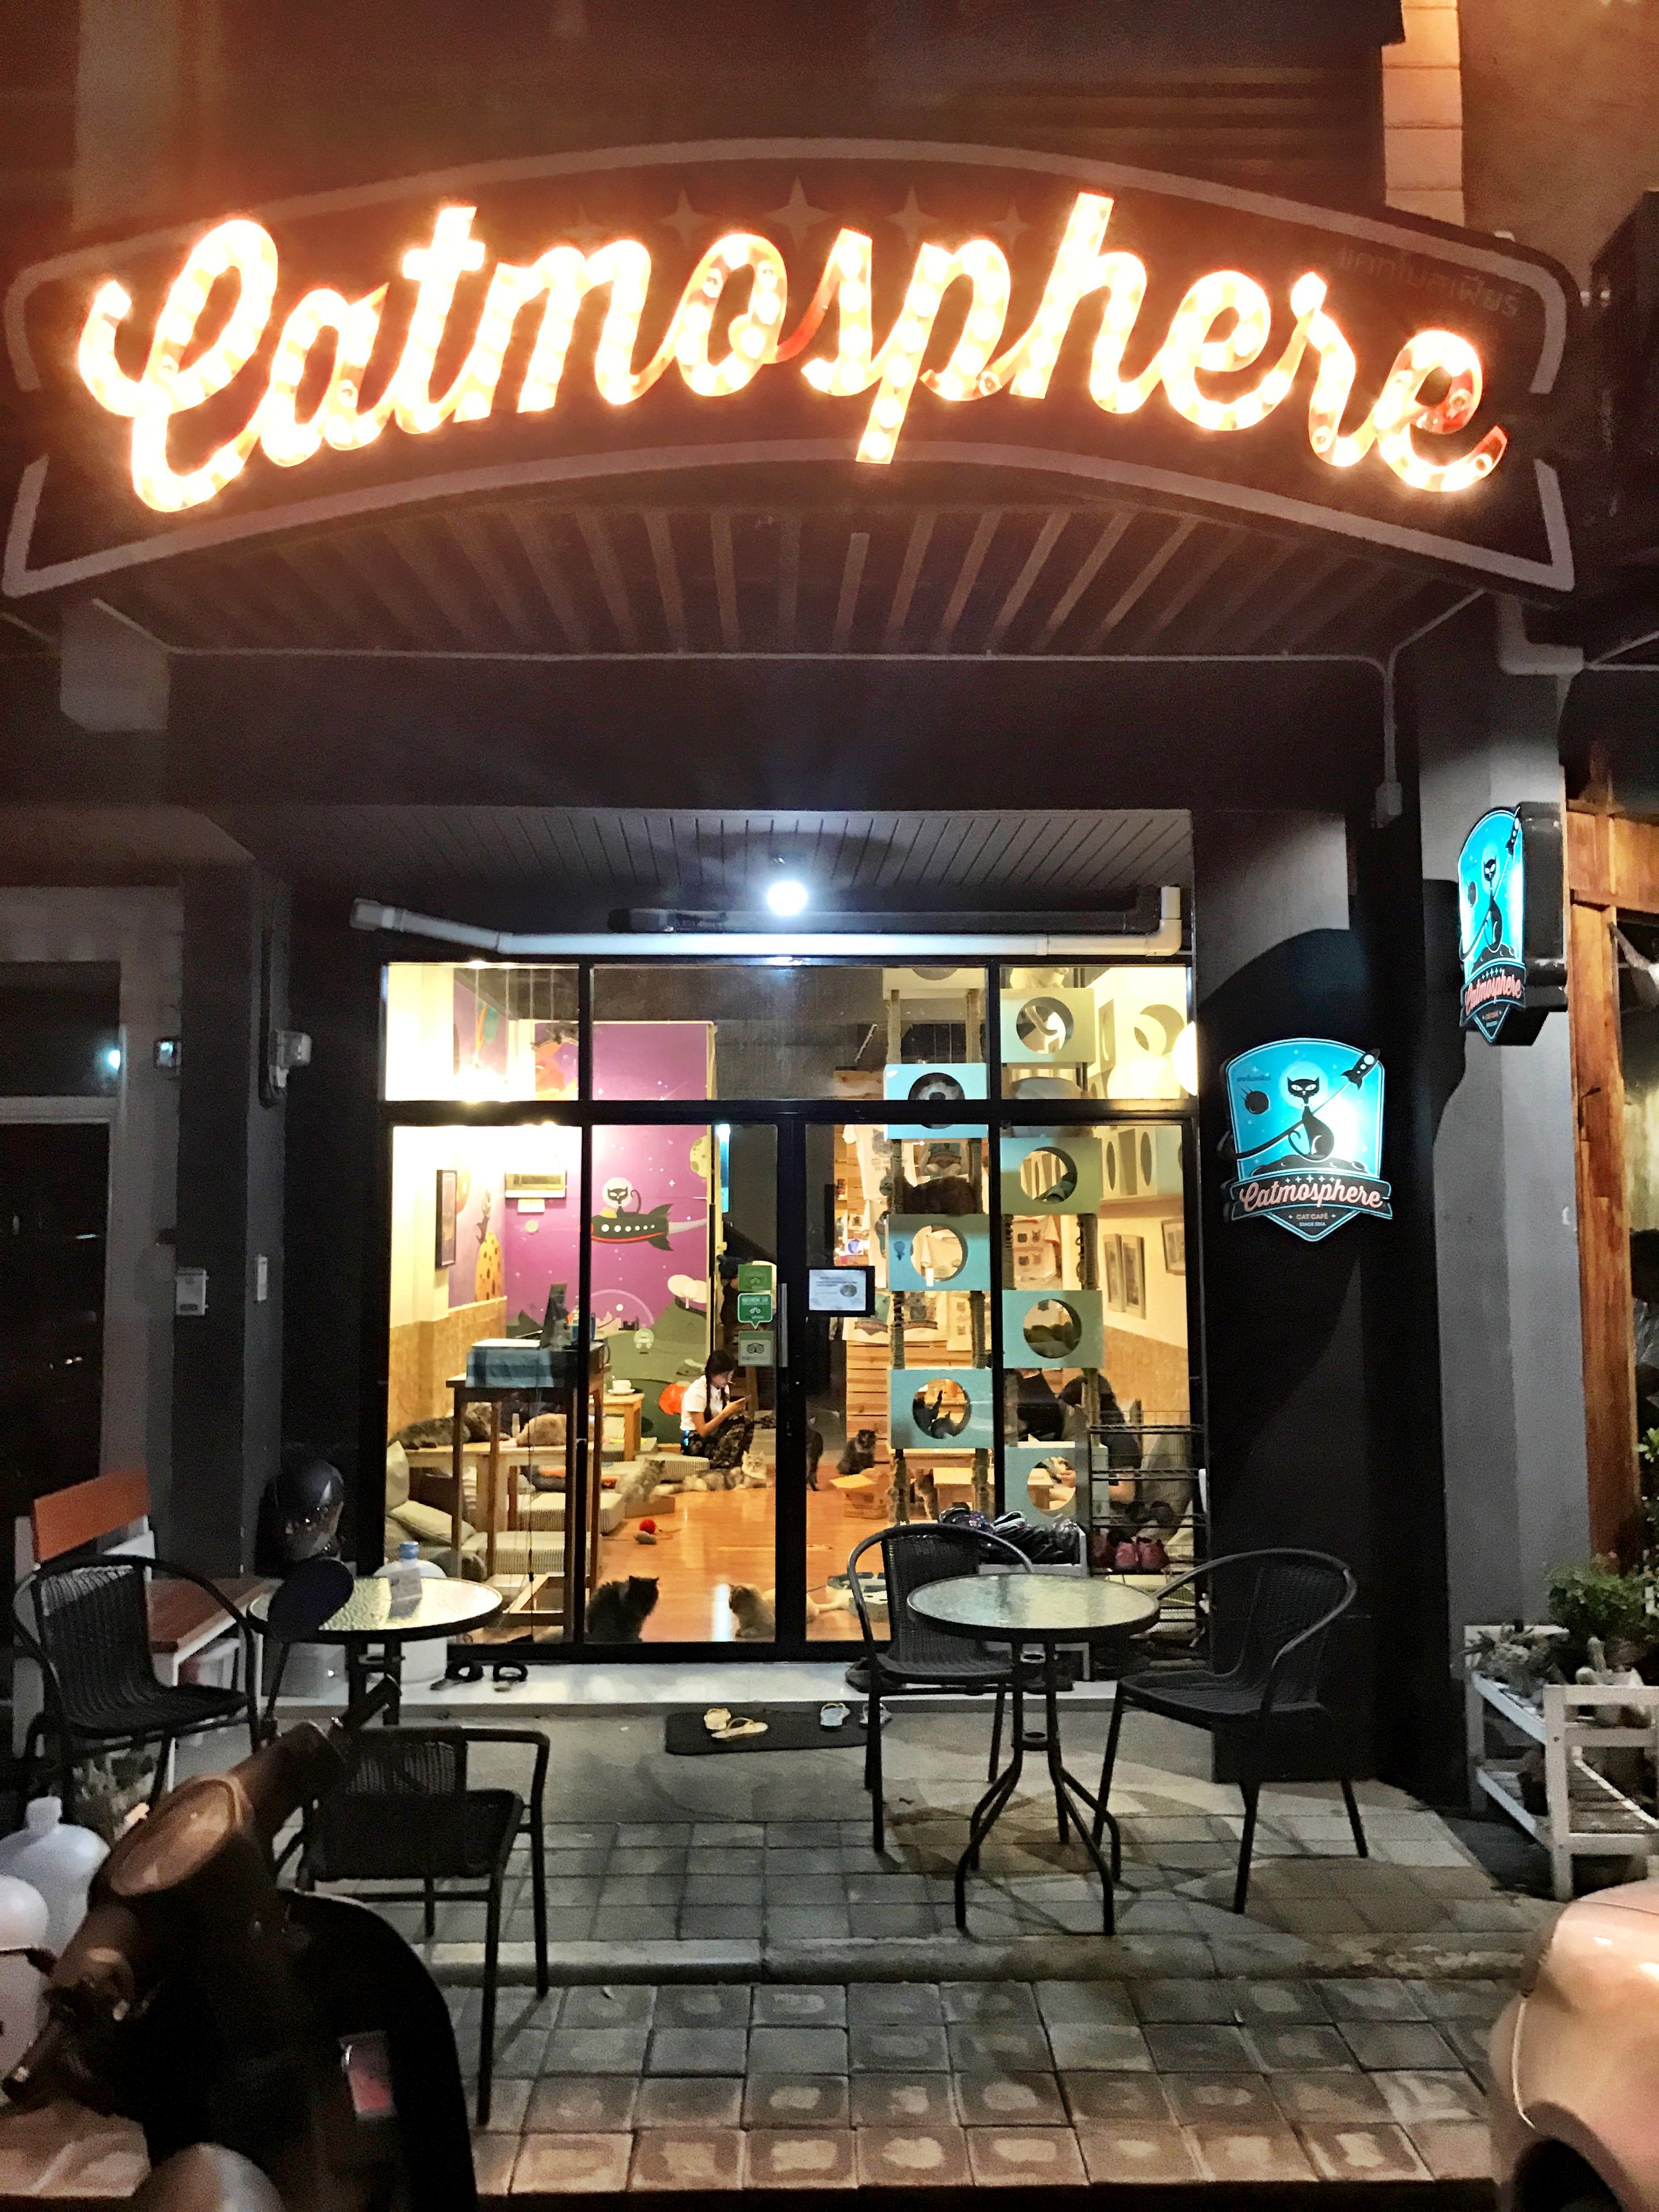 If you love cats, stop in Catmosphere for a caffeine and feline fix